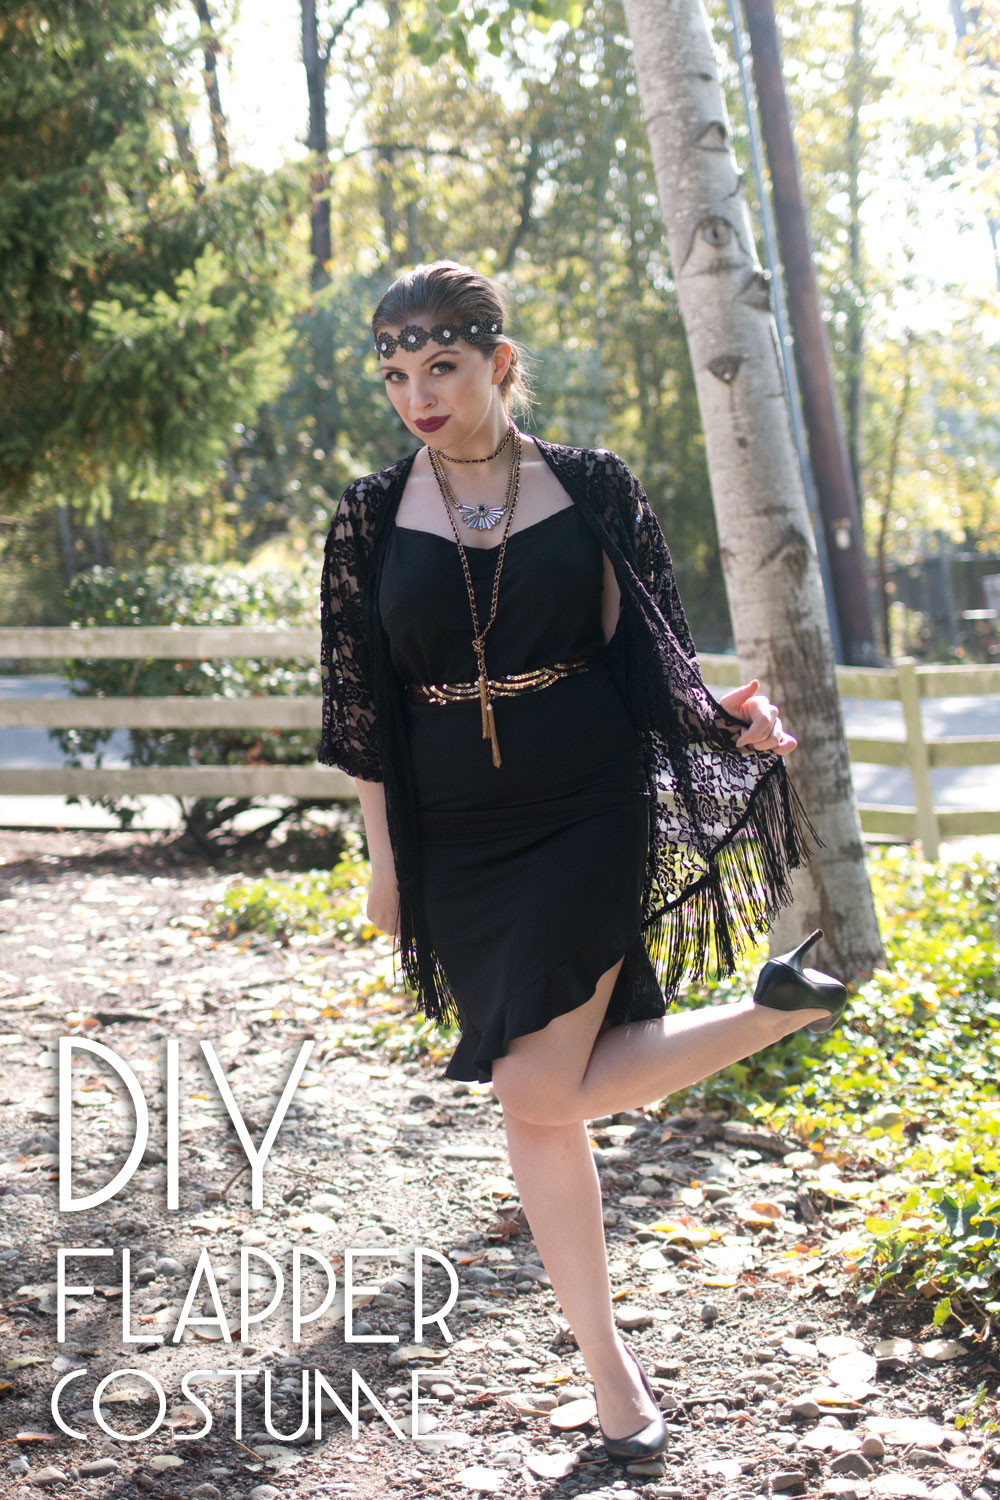 Best ideas about DIY Flapper Costume . Save or Pin DIY Flapper Costume Hello Rigby Seattle Fashion & Beauty Now.